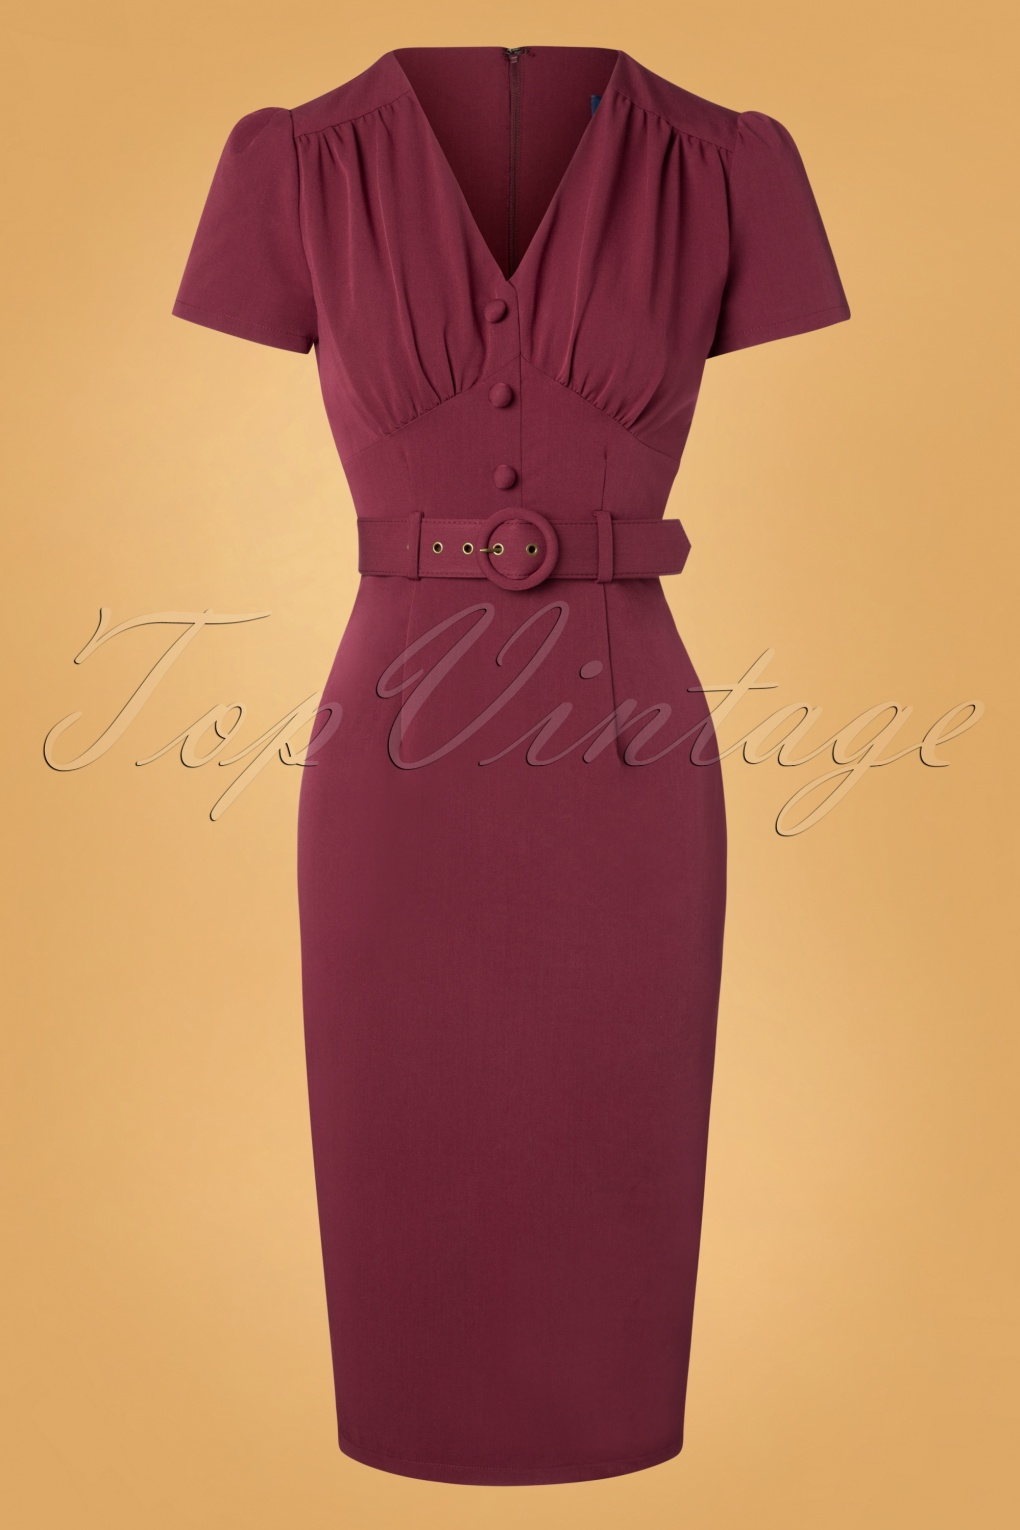 1950s Dresses, 50s Dresses | 1950s Style Dresses 40s Bethany Pencil Dress in Wine £63.99 AT vintagedancer.com